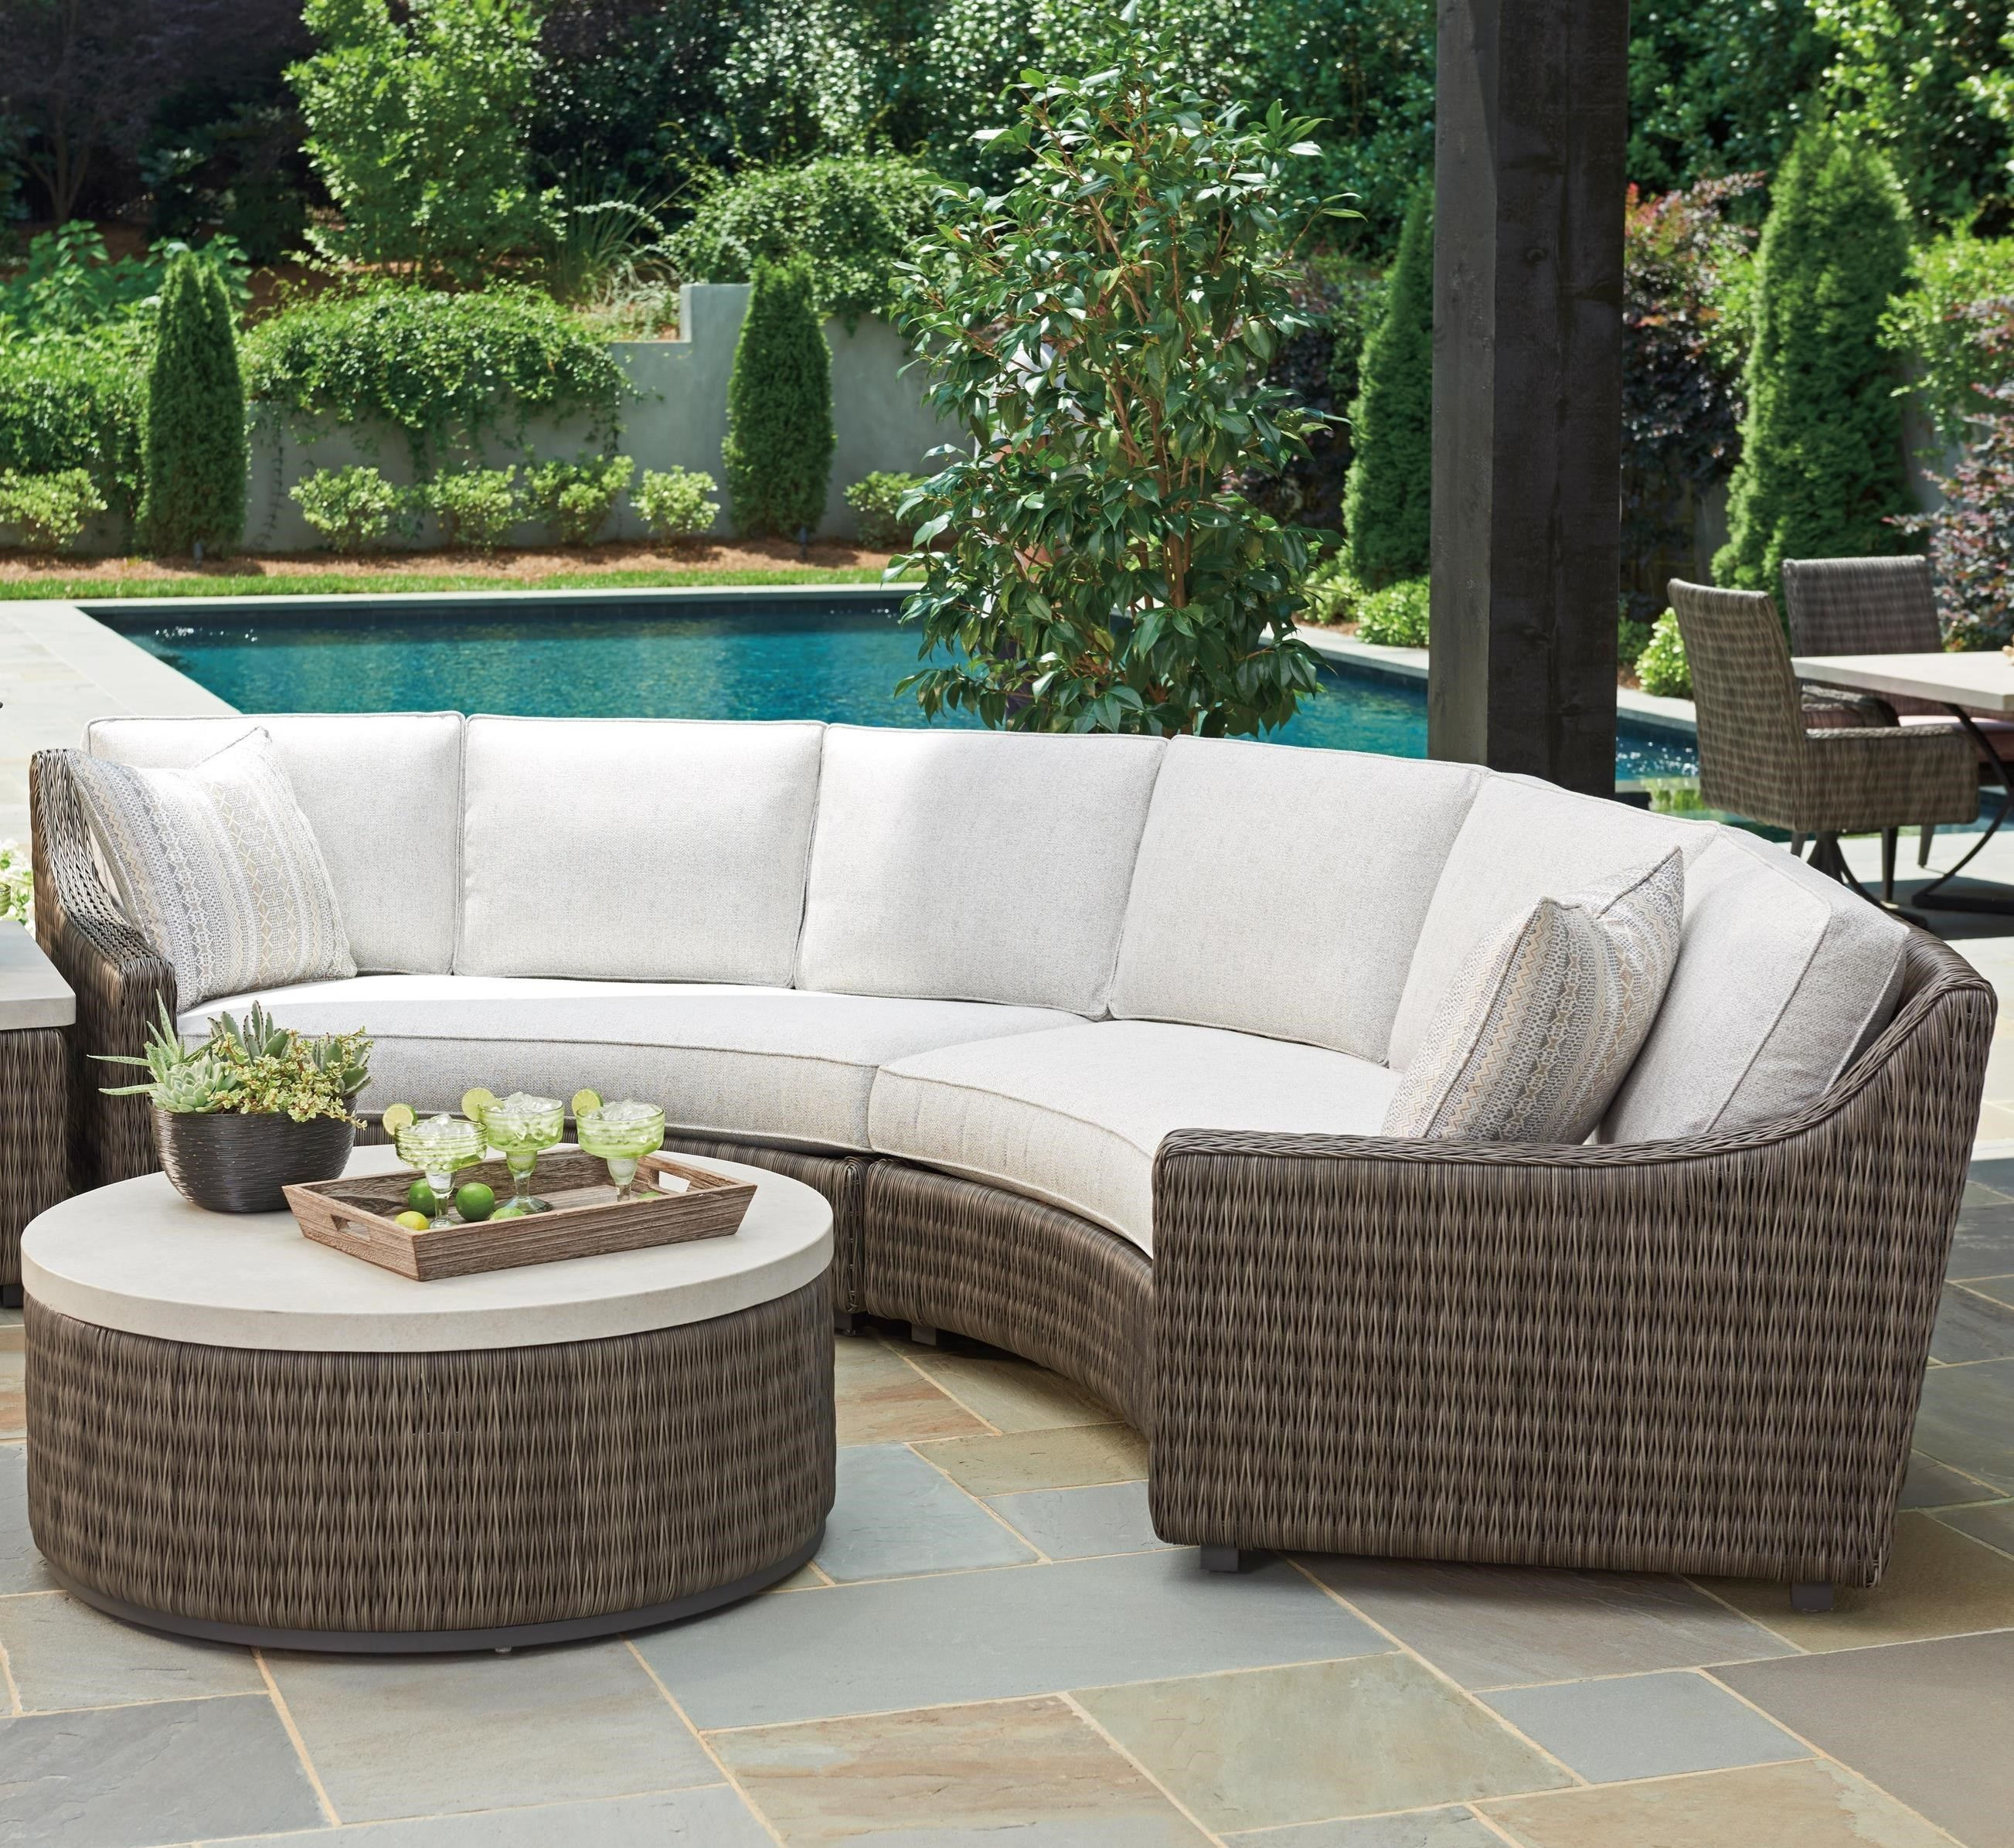 Tommy Bahama Outdoor Living Cypress Point Ocean Terrace 4 Seat Outdoor  Curved Sectional Sofa With Weatherproof